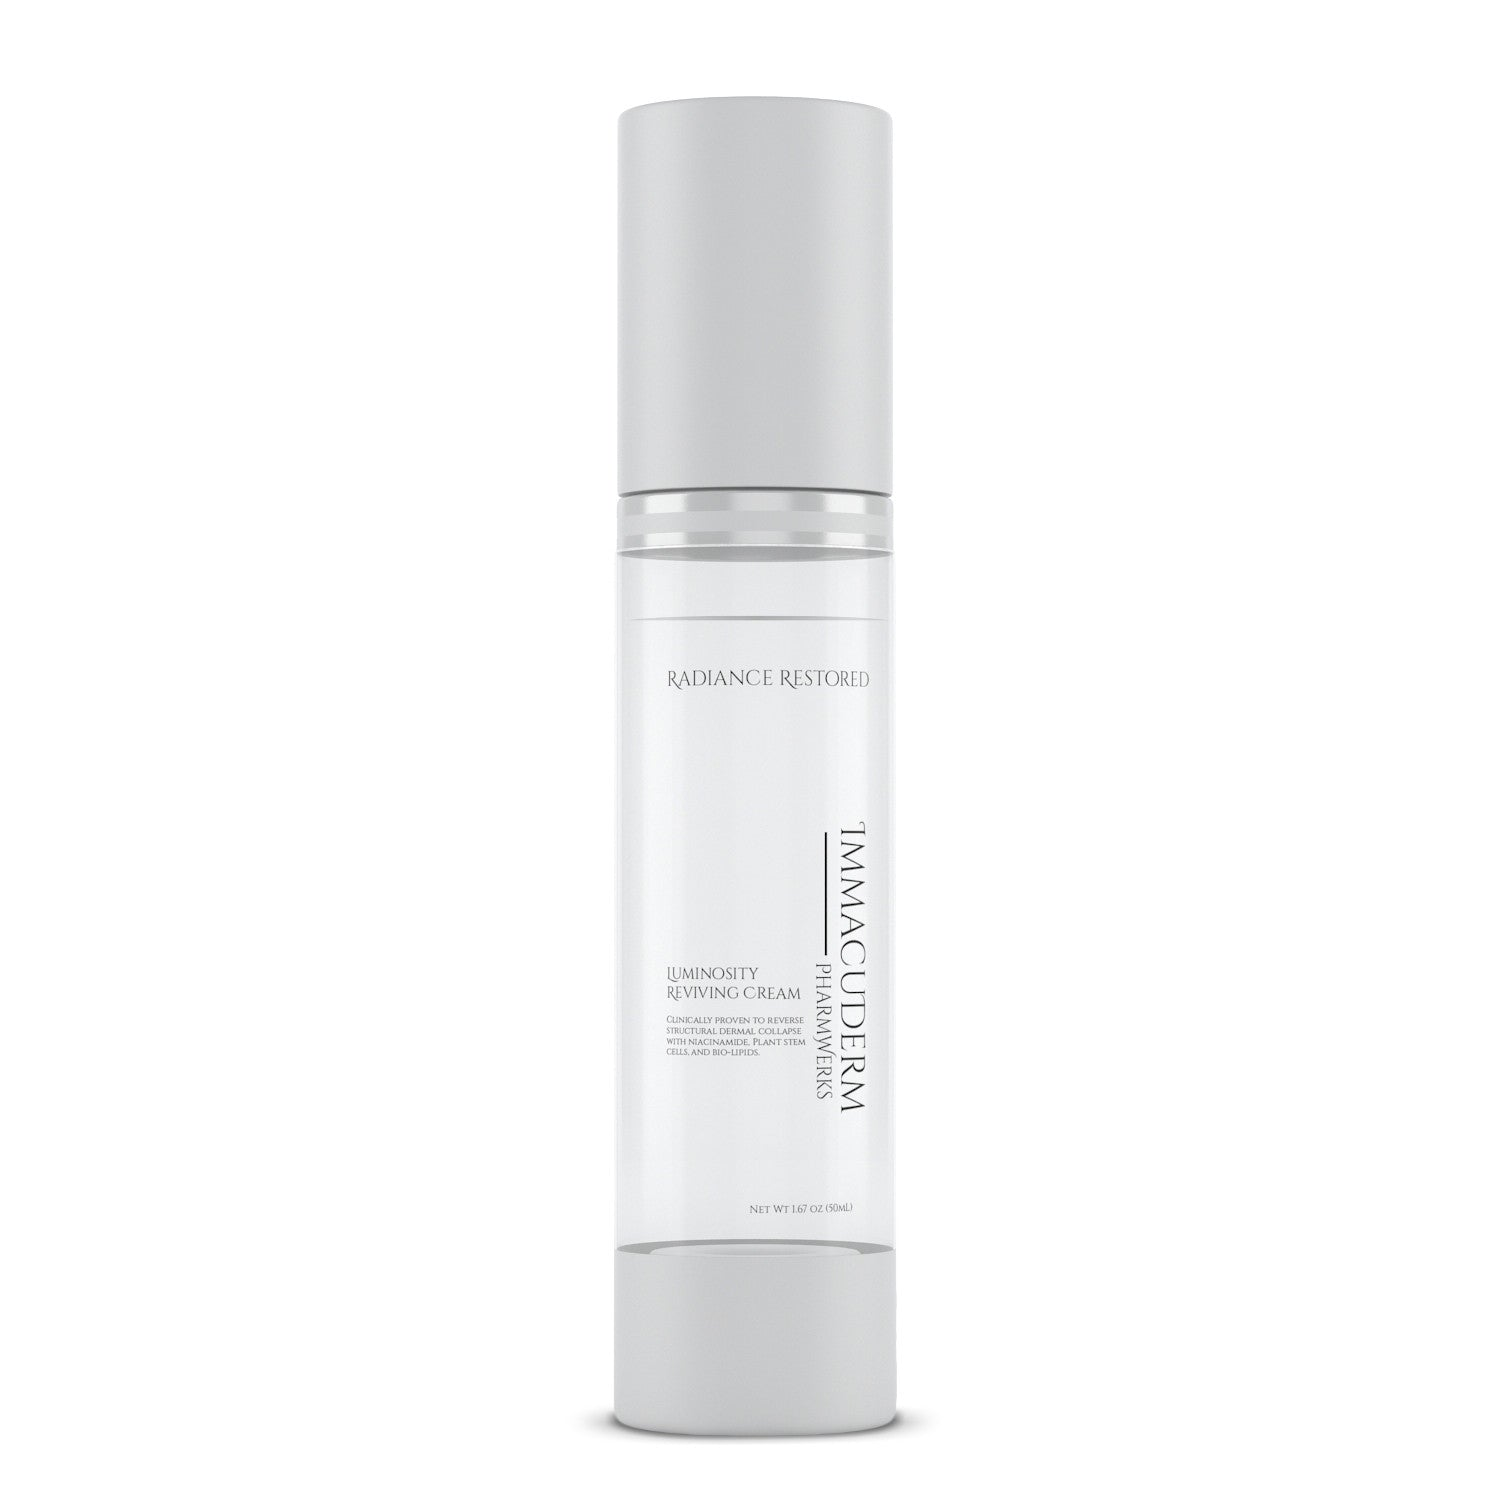 Luminosity Reviving Cream, 50g